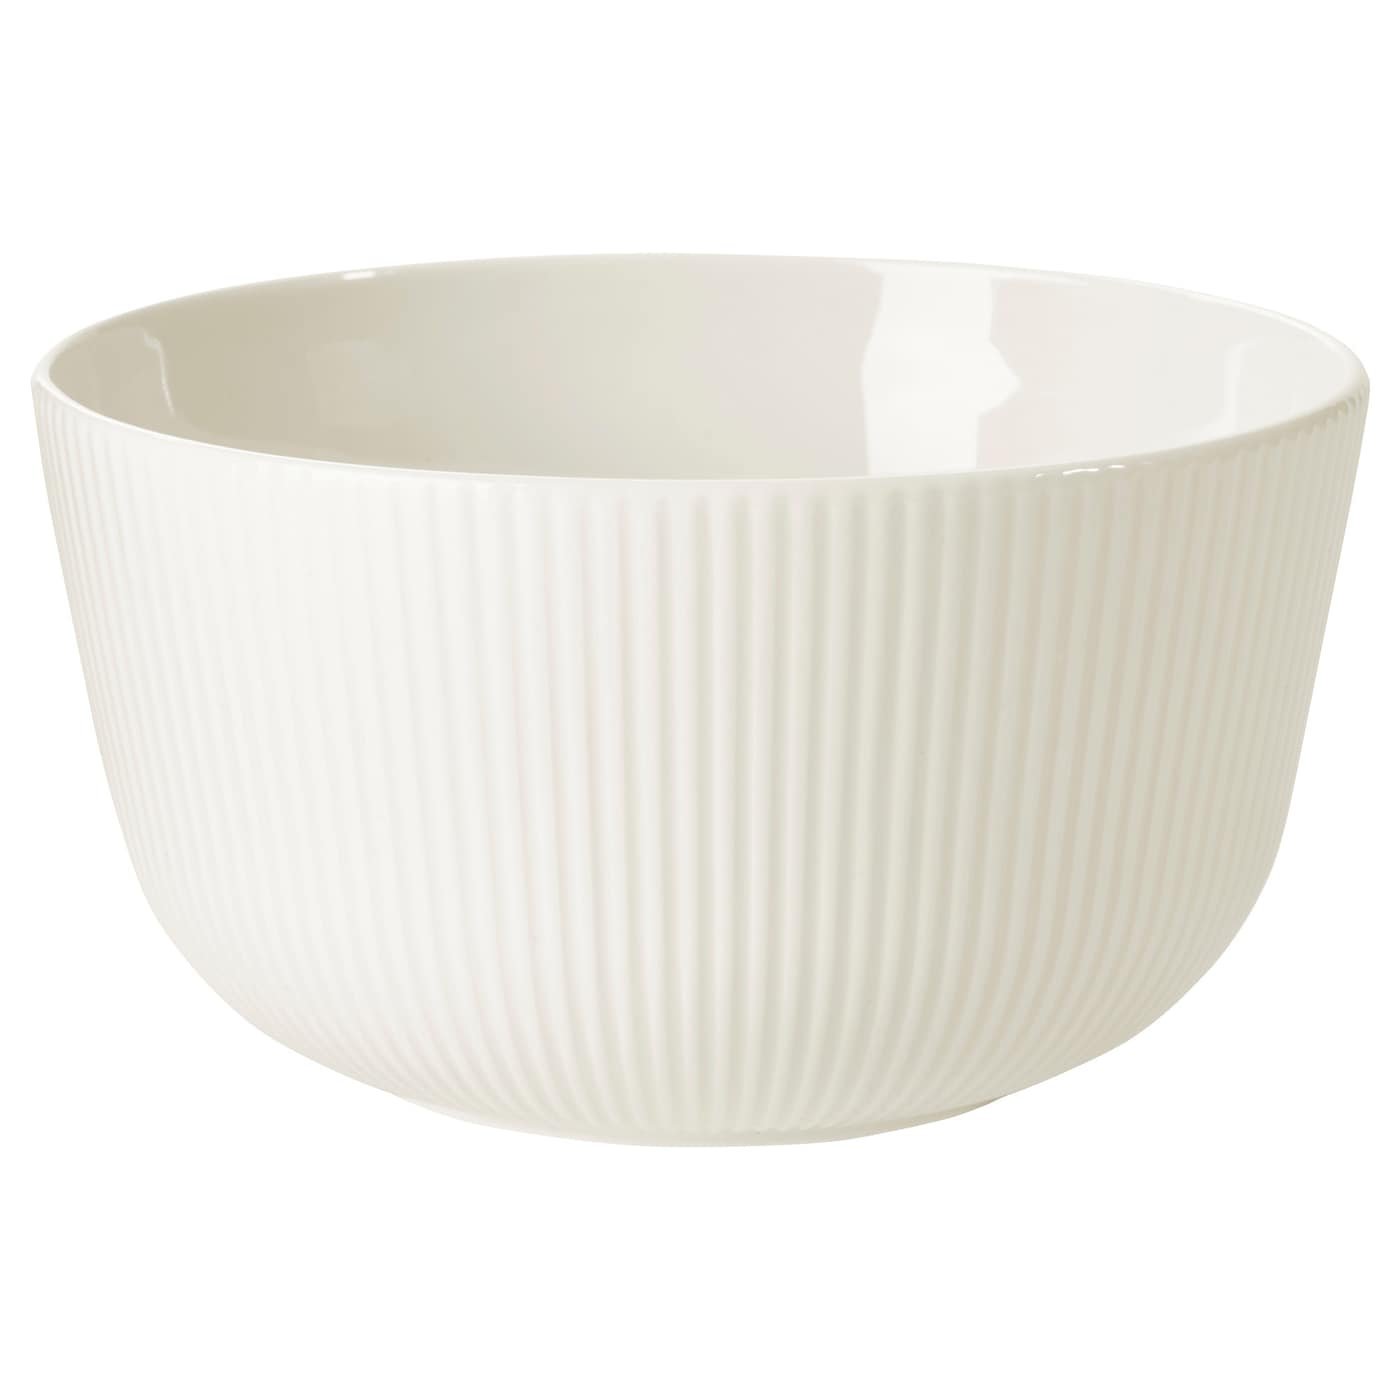 IKEA OFANTLIGT bowl Made of feldspar porcelain, which makes the bowl impact resistant and durable.